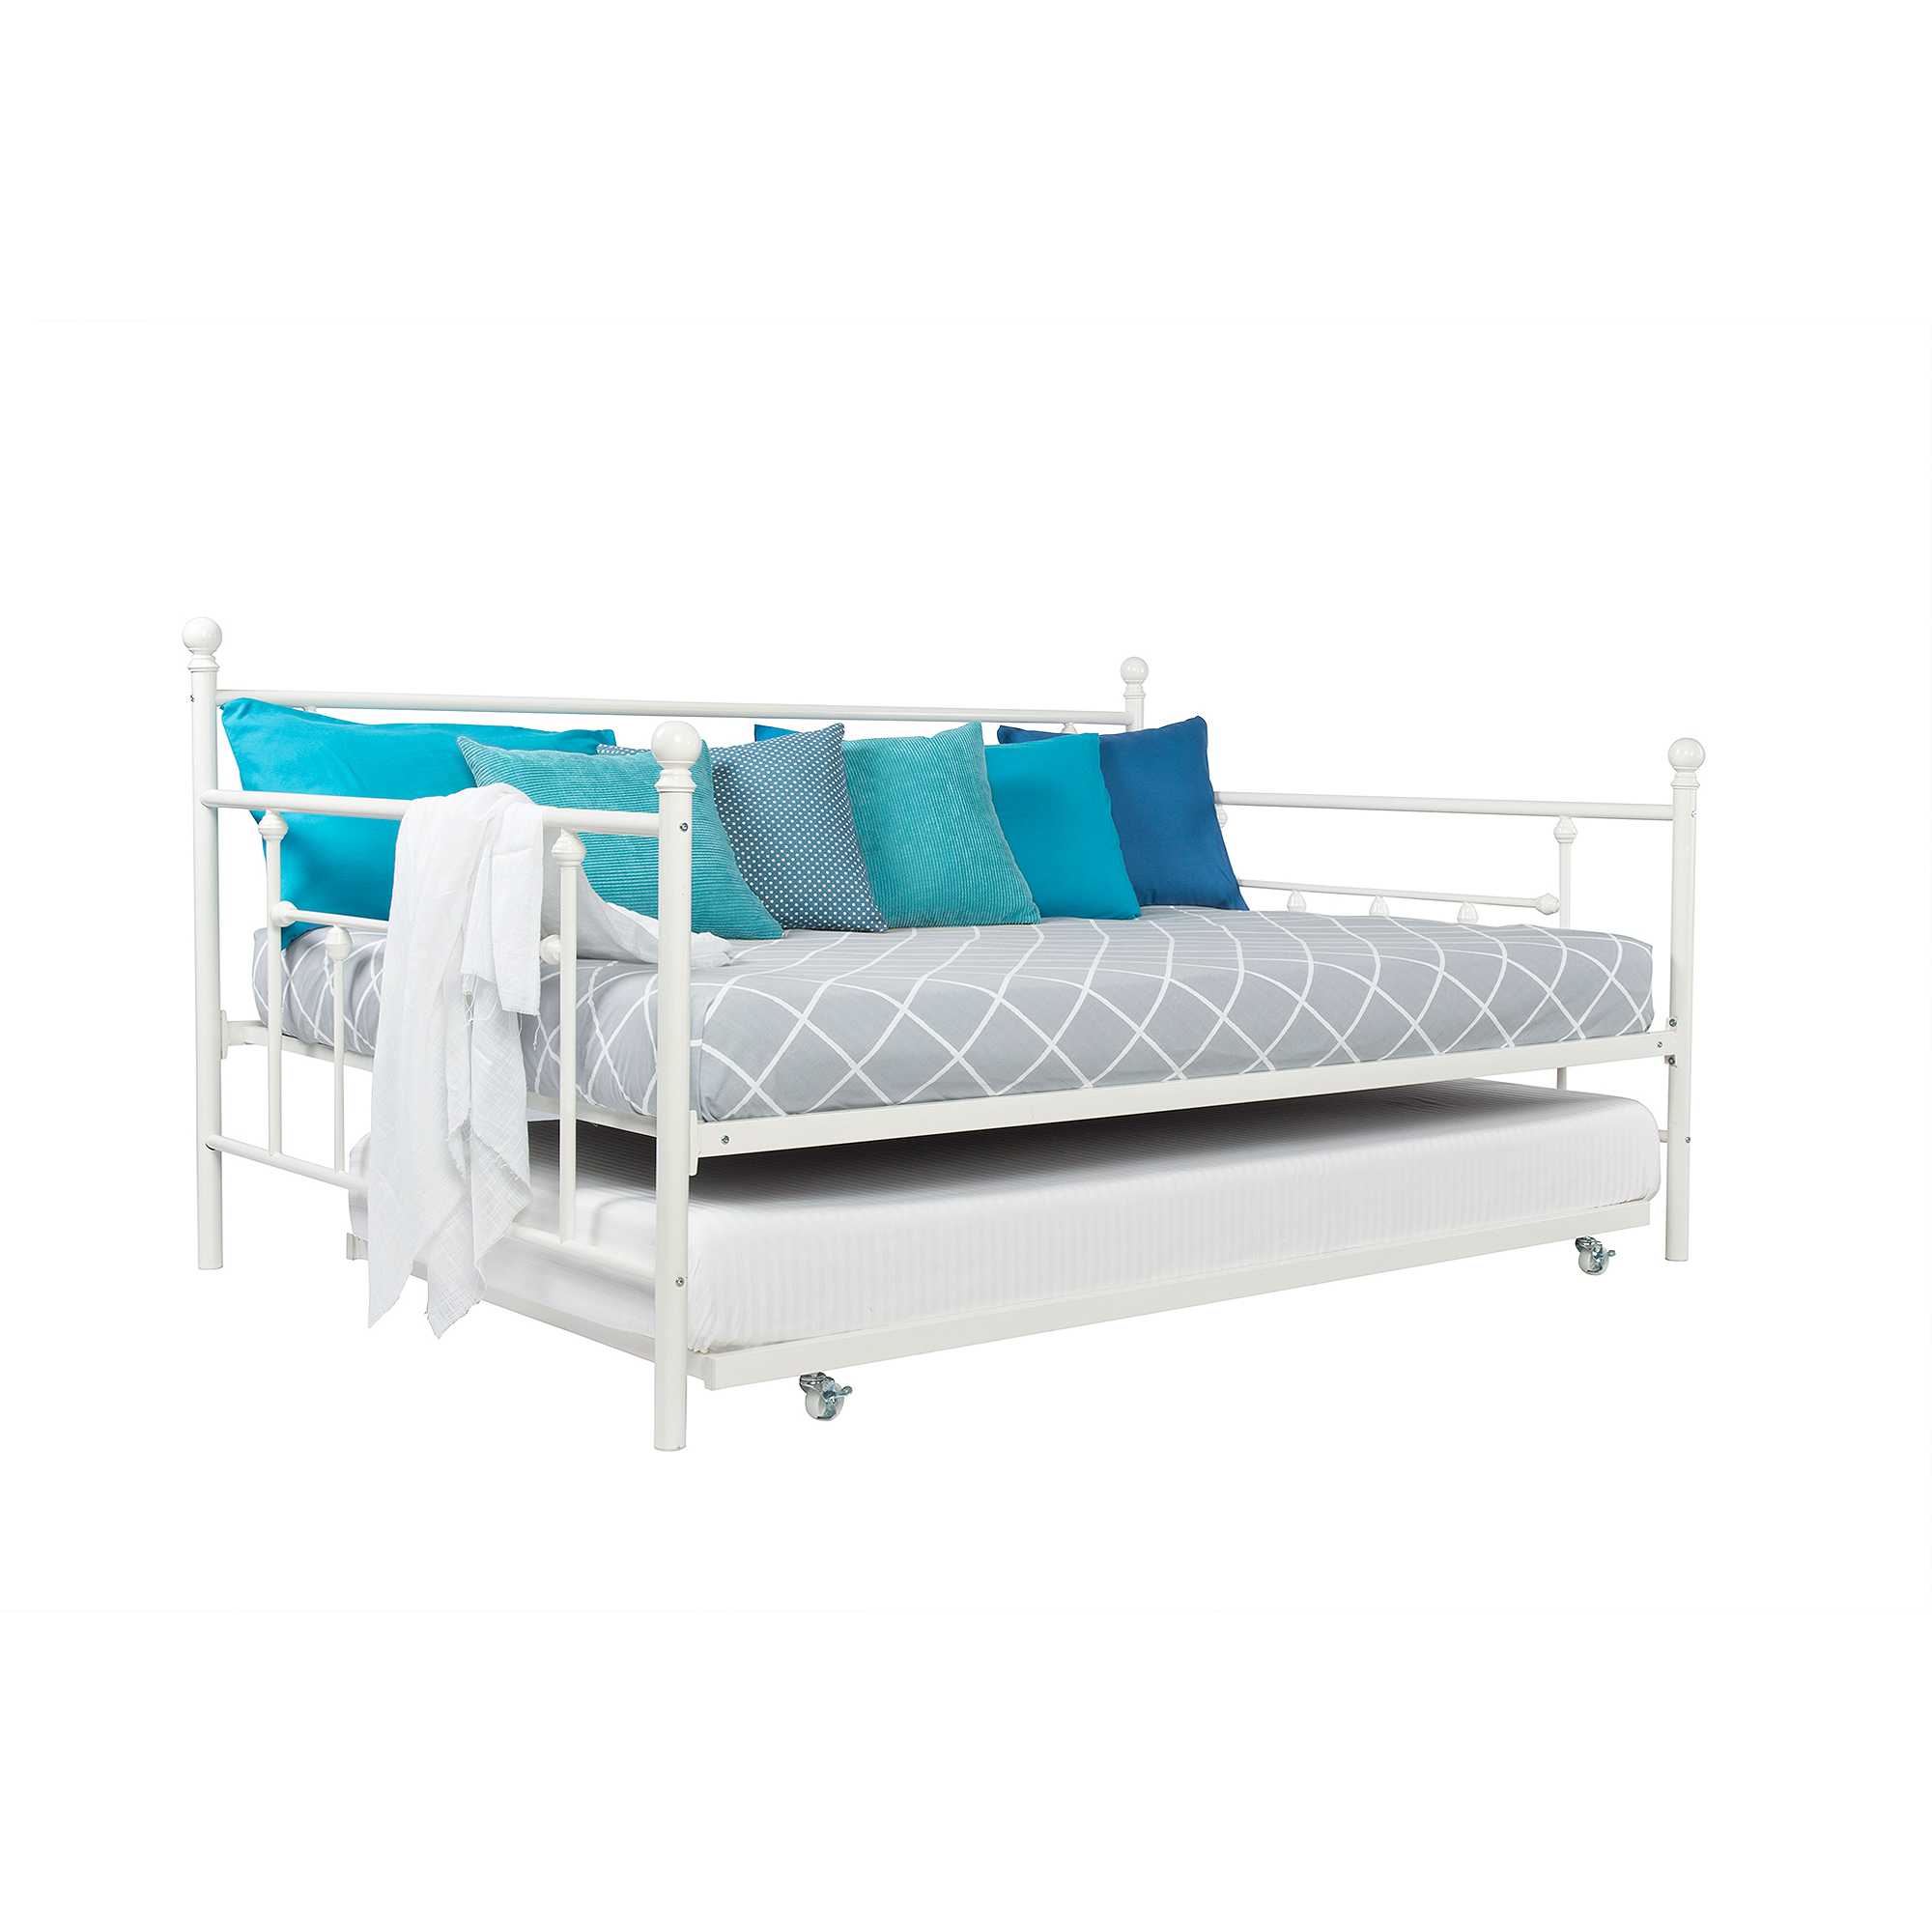 Full Daybed | Daybed Frame Full Size | Trundle Bed Ikea